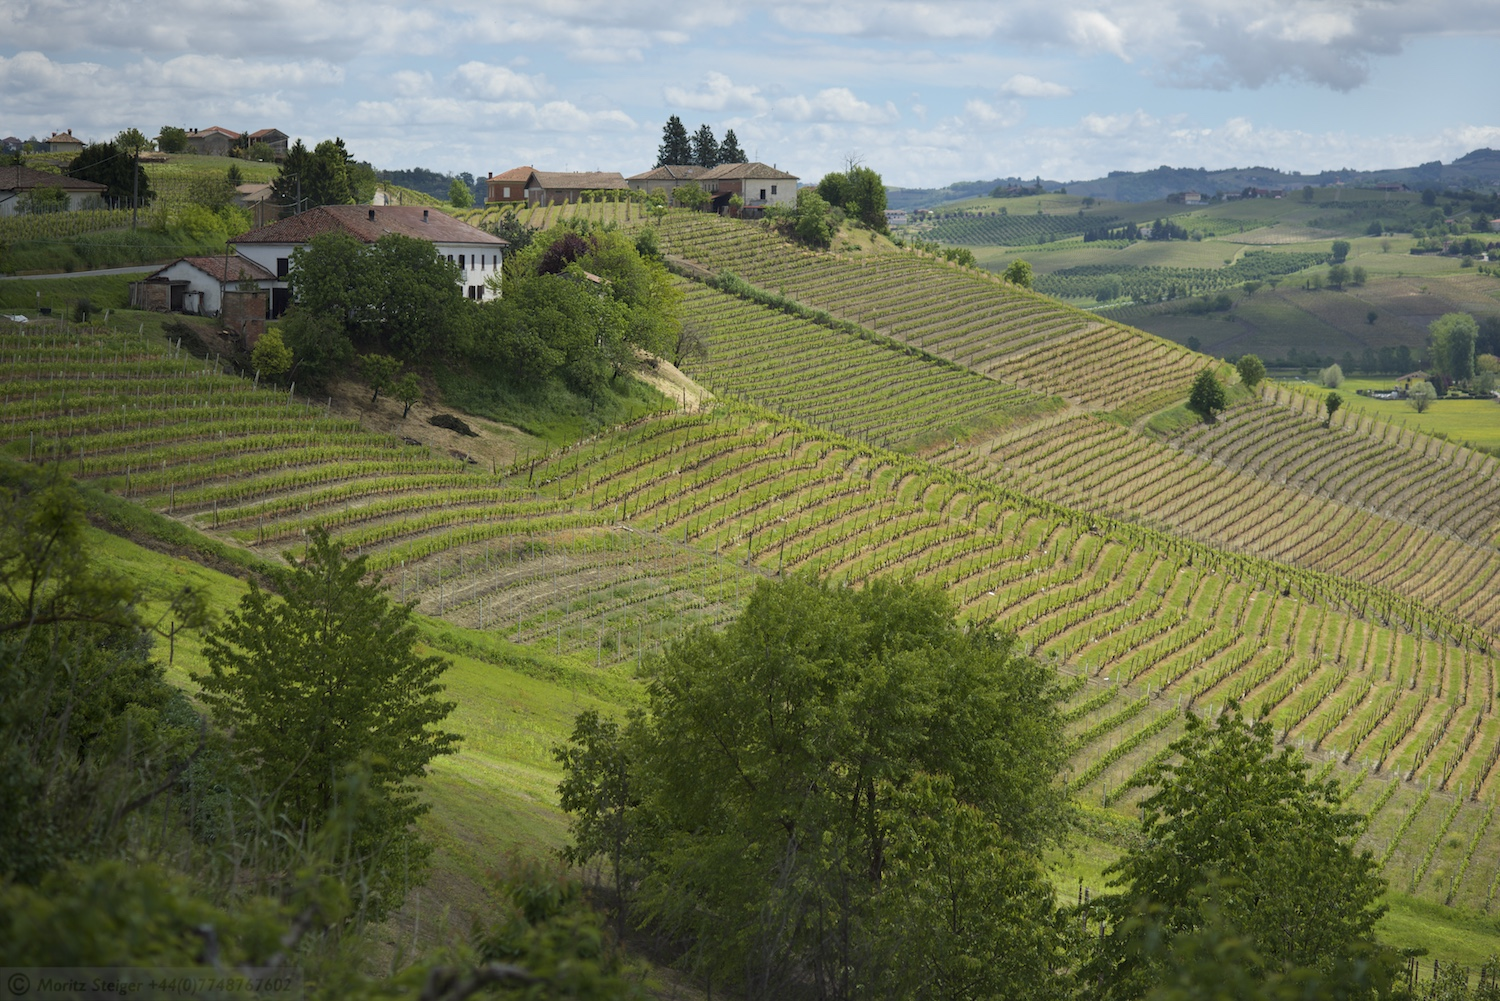 Vineyards in Piemonte near Moasca, Italy